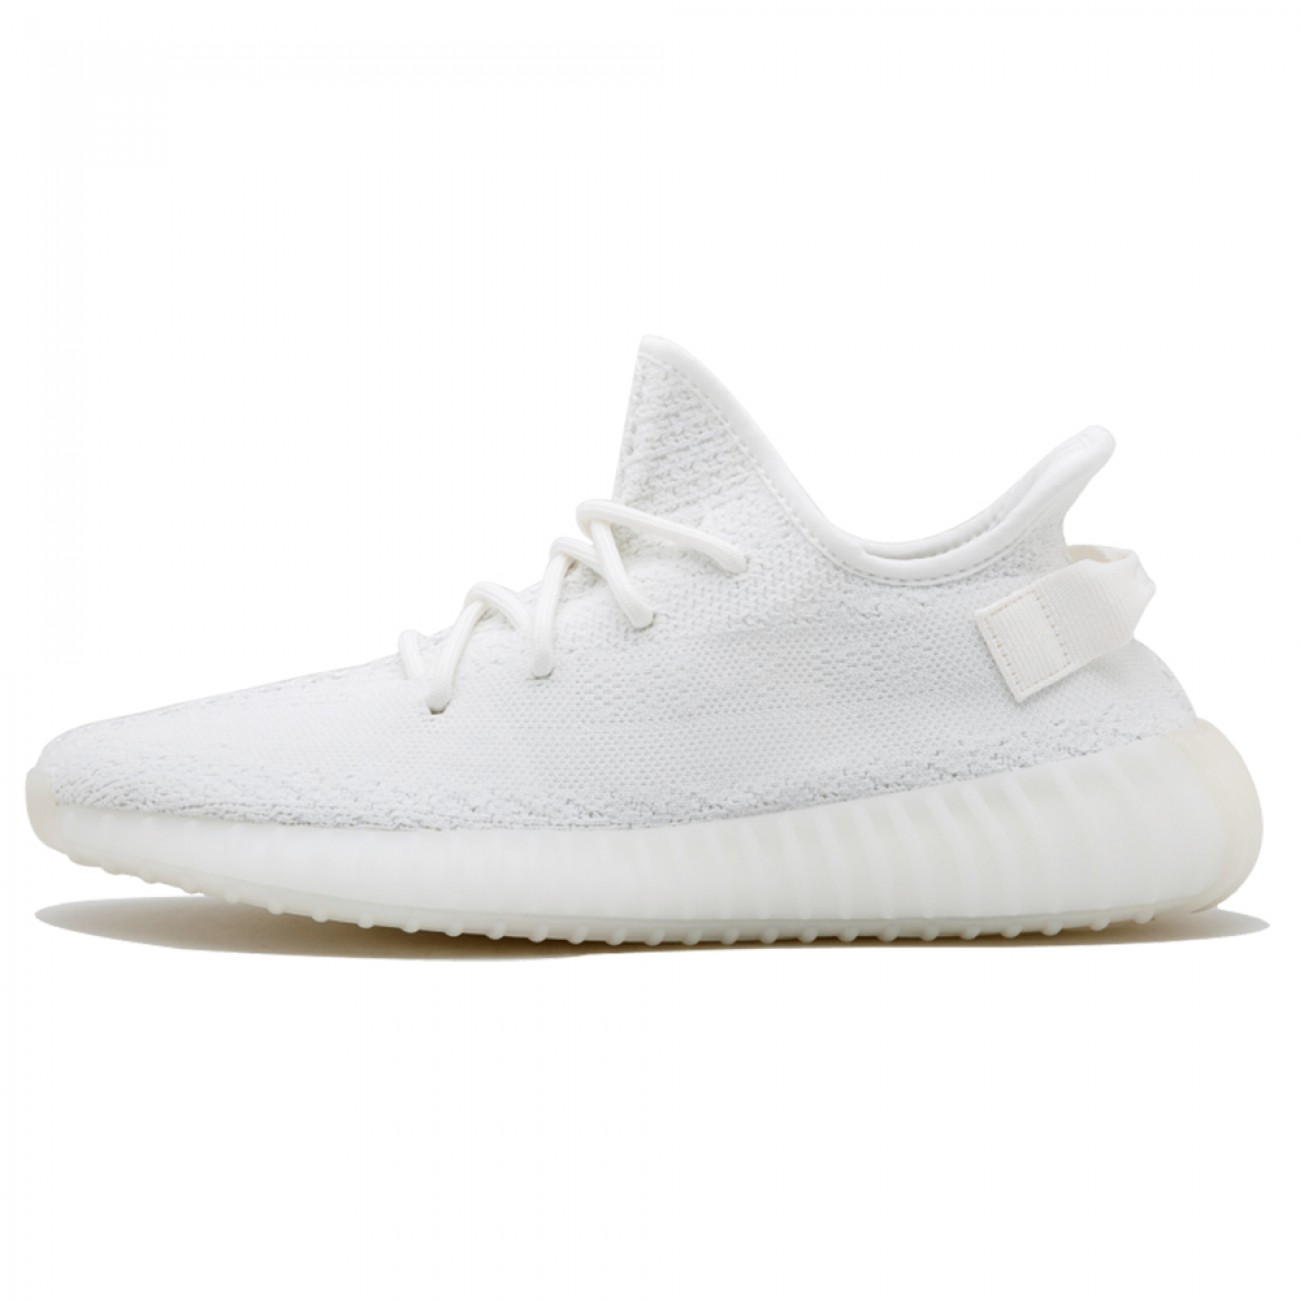 adidas-originals-yeezy-boost-350-v2-cream-white-CP9366_1-1300x1300.jpg